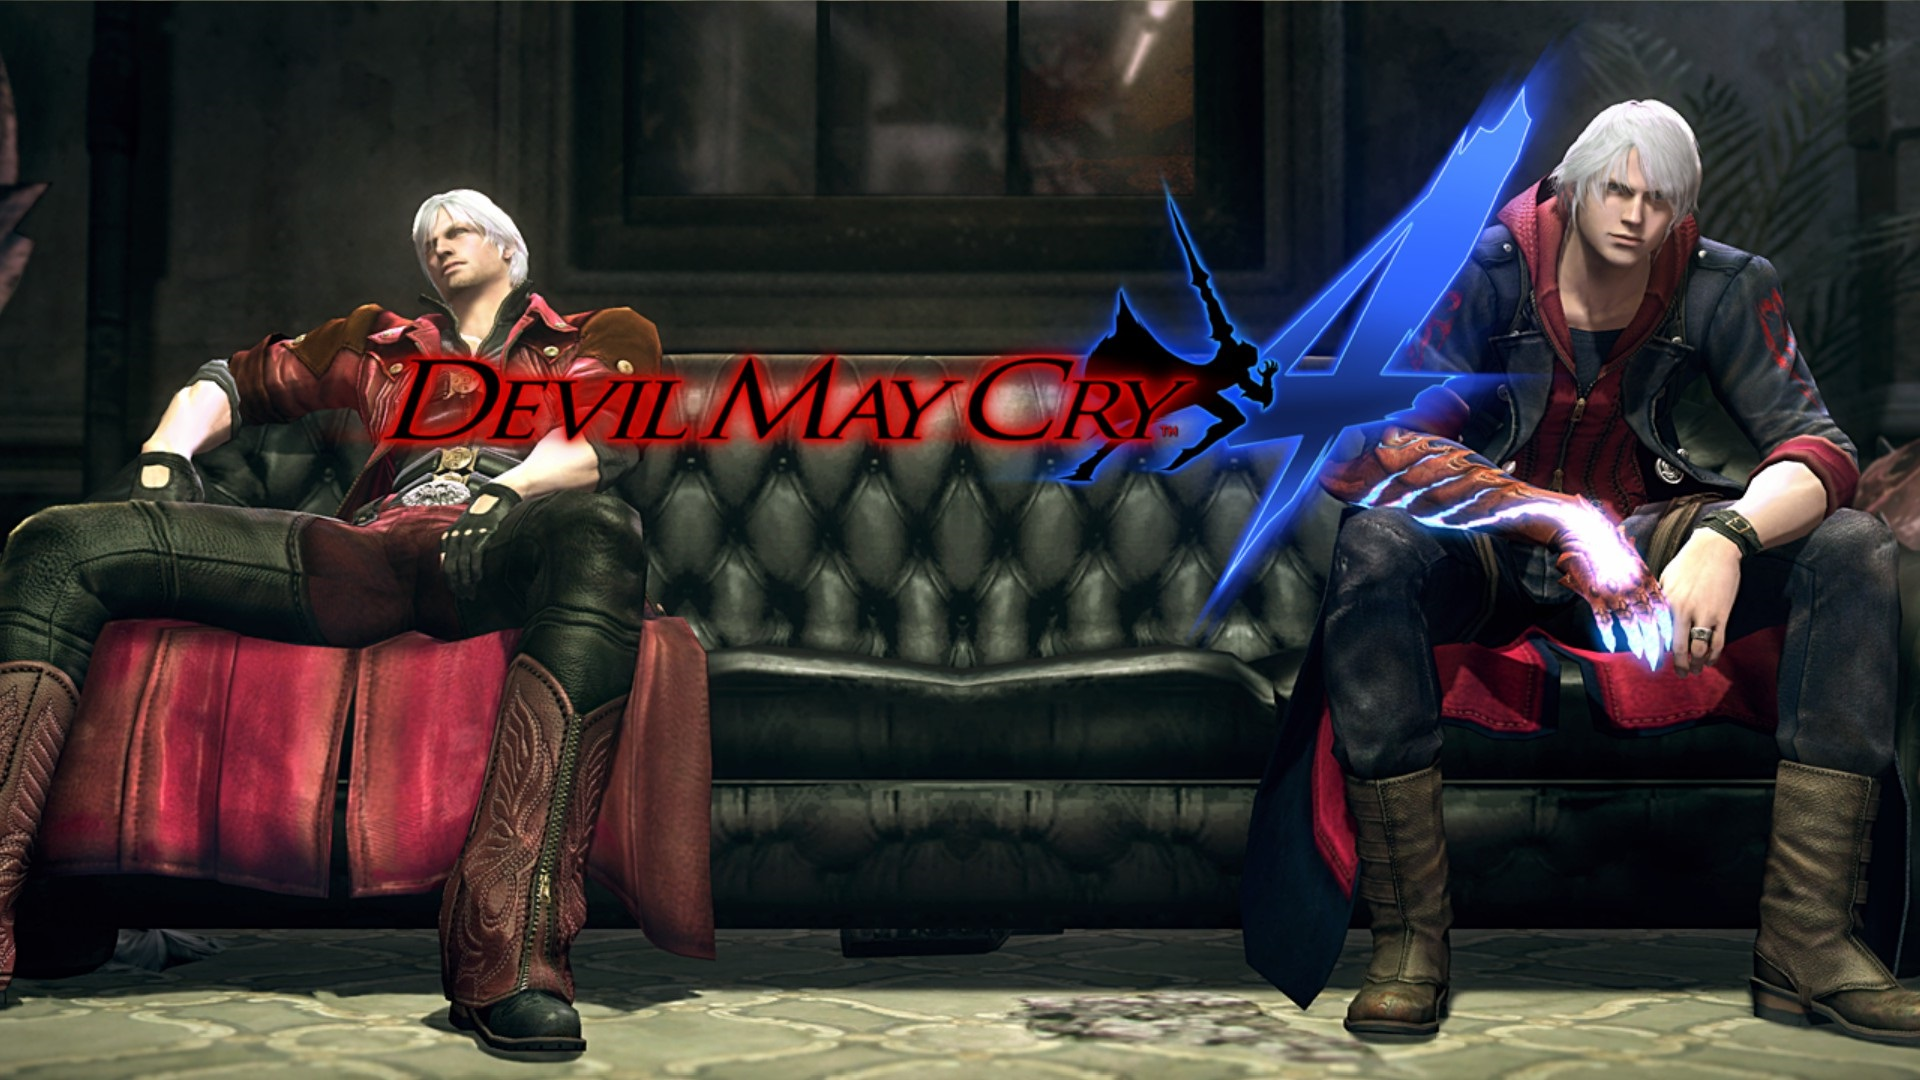 devil may cry 4 wallpaperstreesie on deviantart